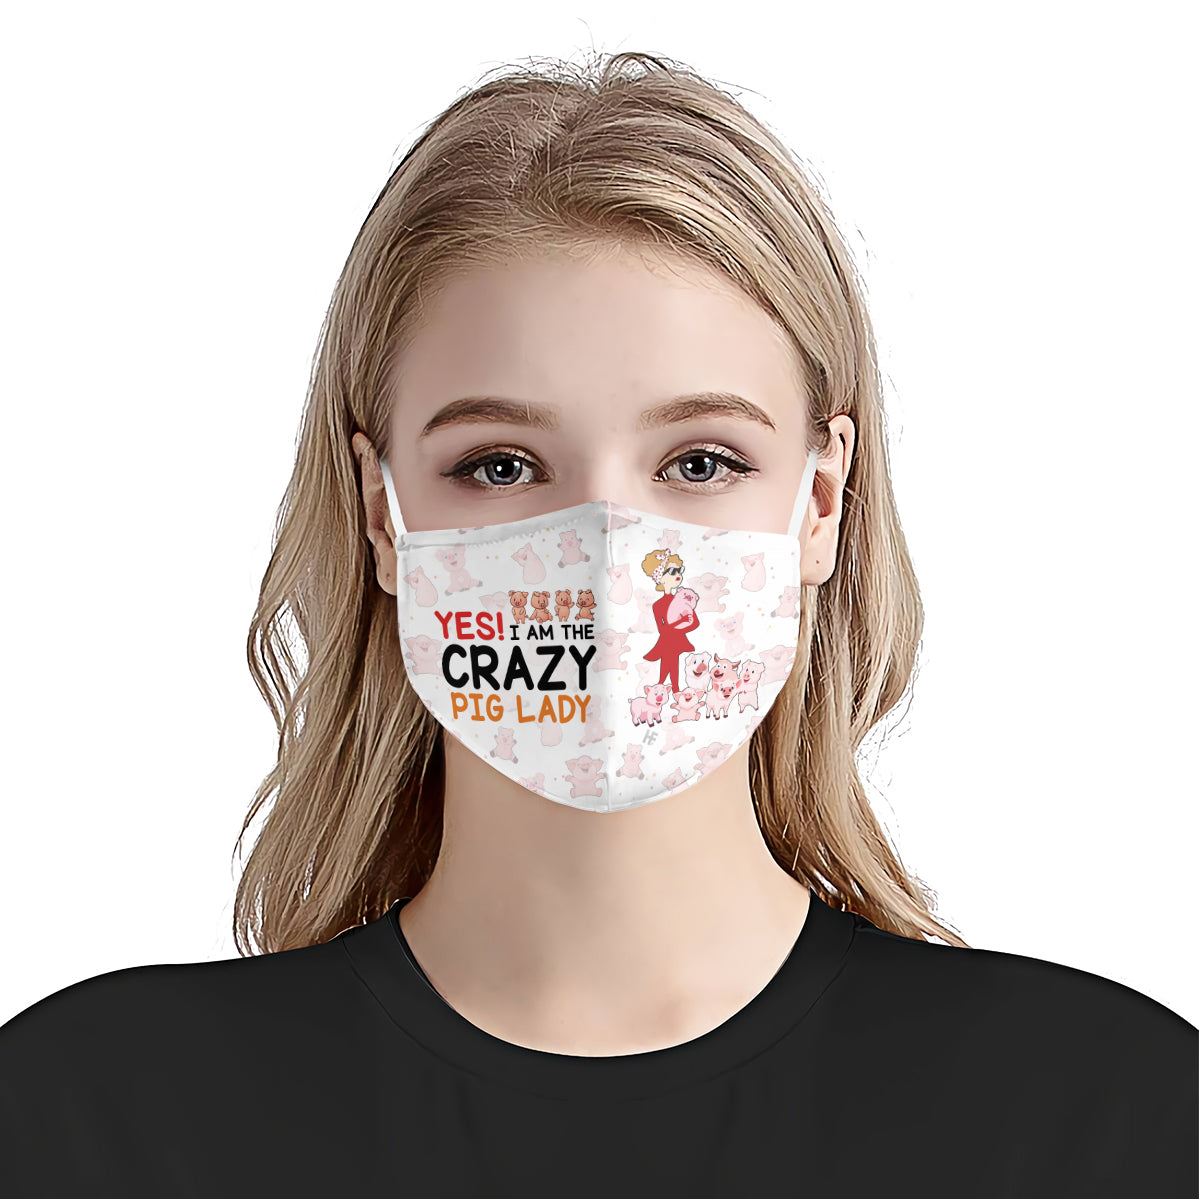 Yes I am The Crazy Pig Lady White EZ16 0907 Face Mask - Hyperfavor